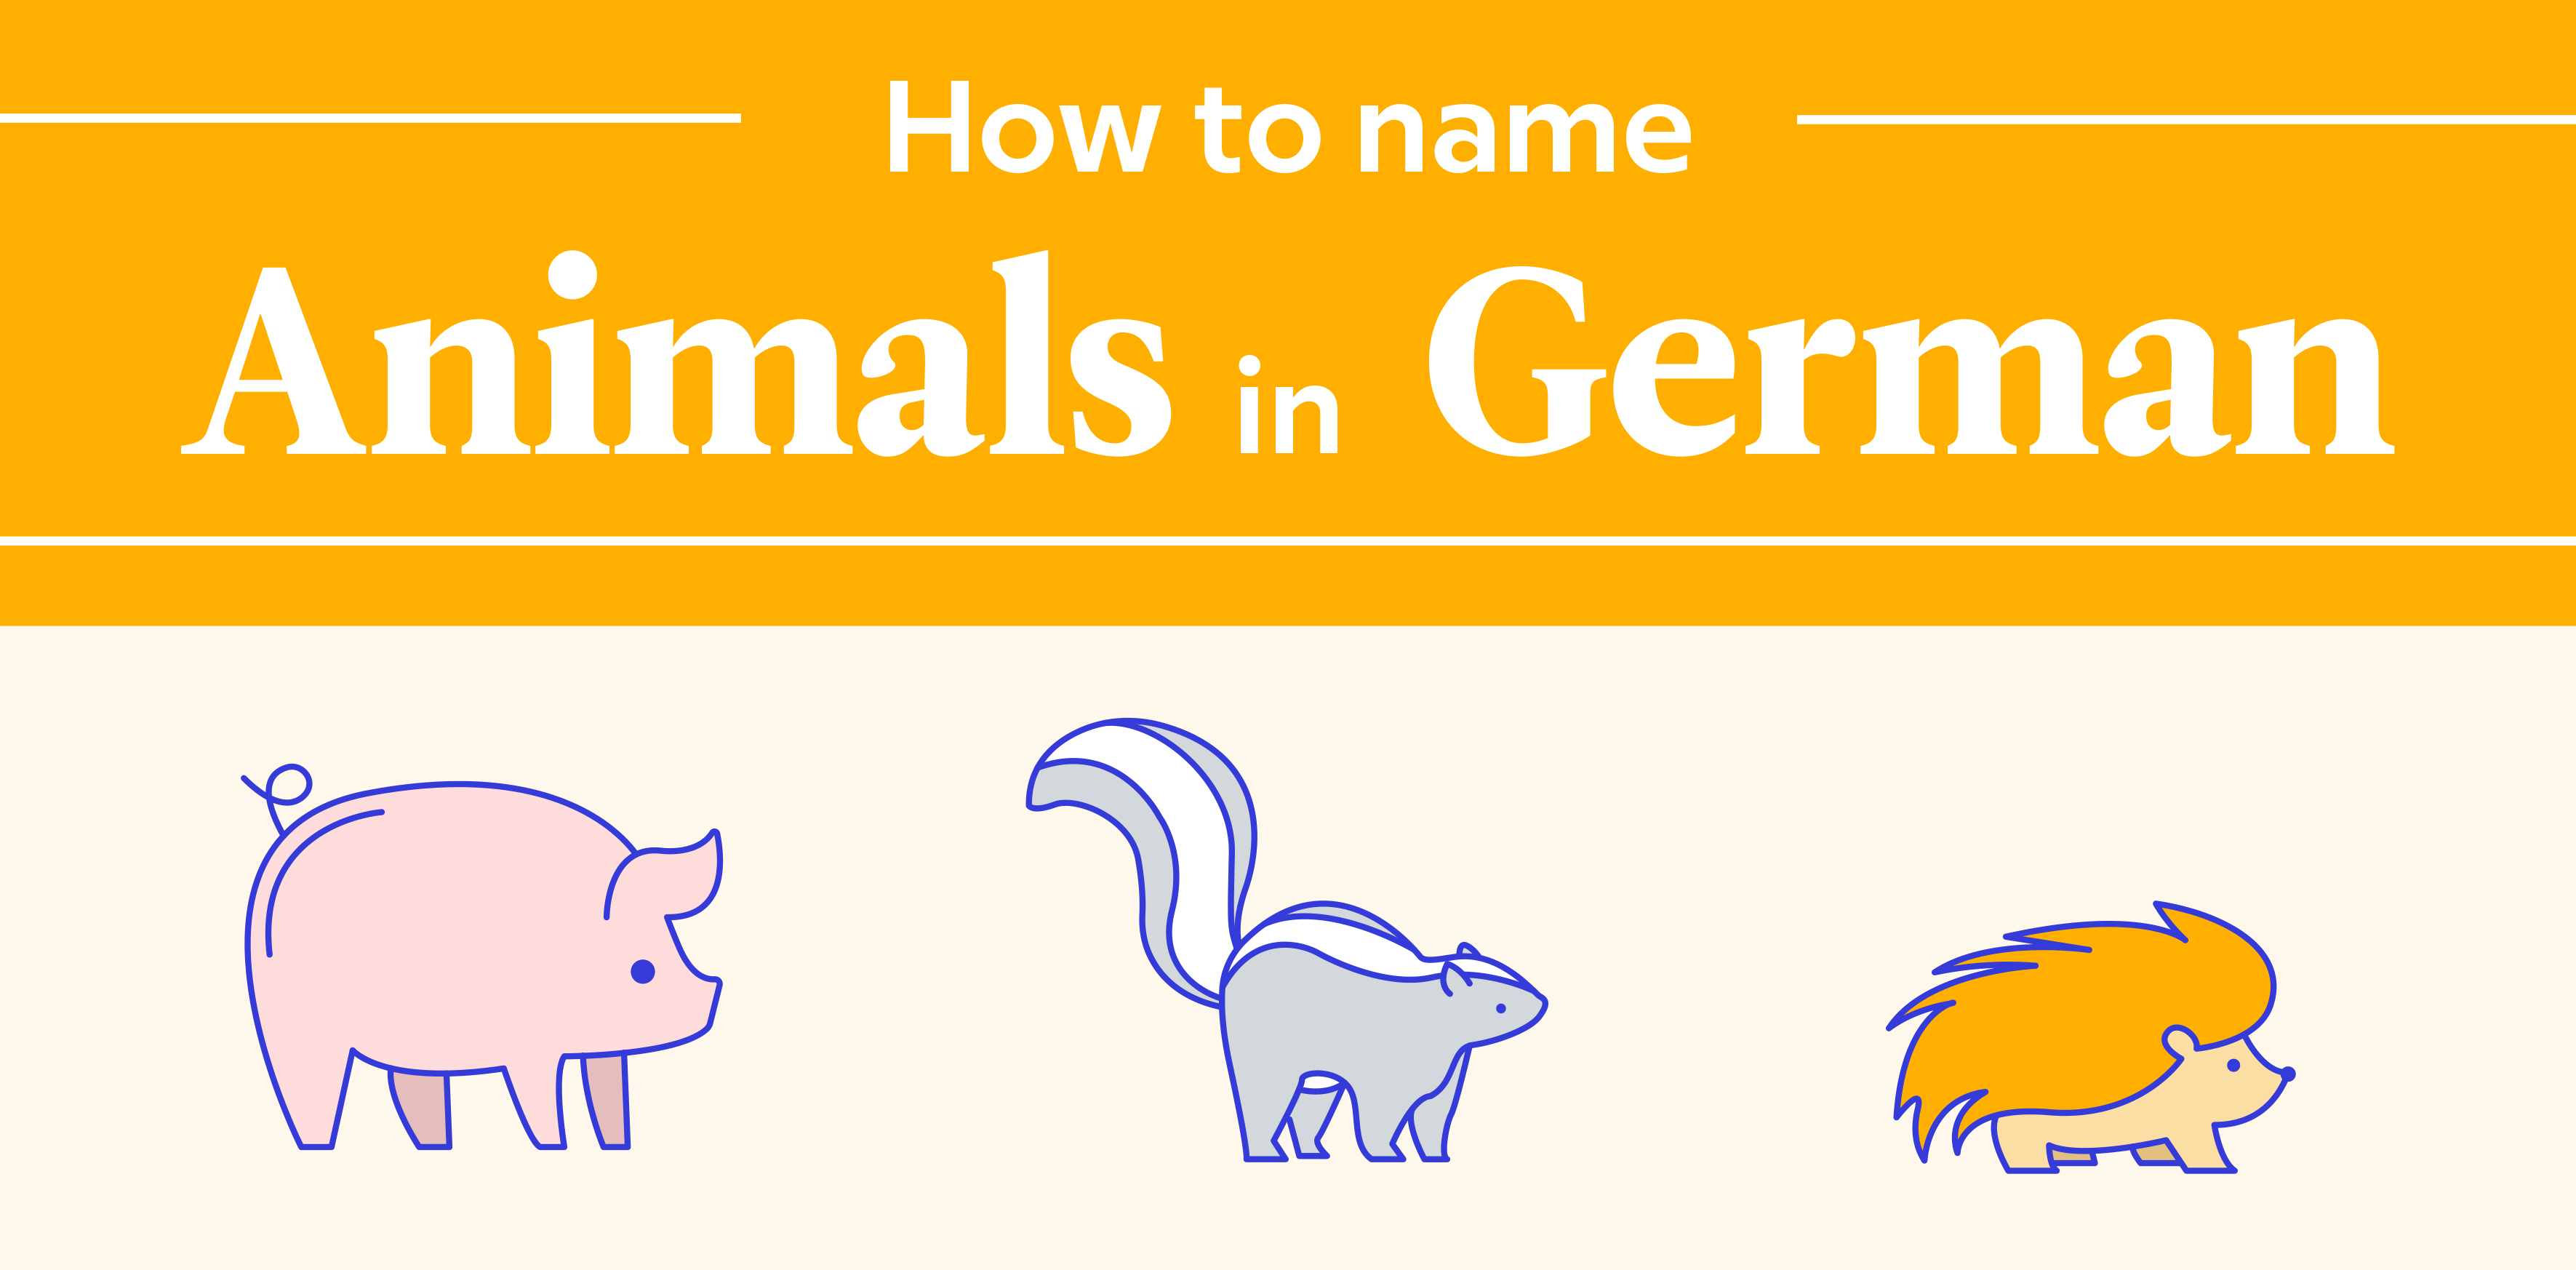 5 Spotify Playlists To Listen To If You Re Learning German